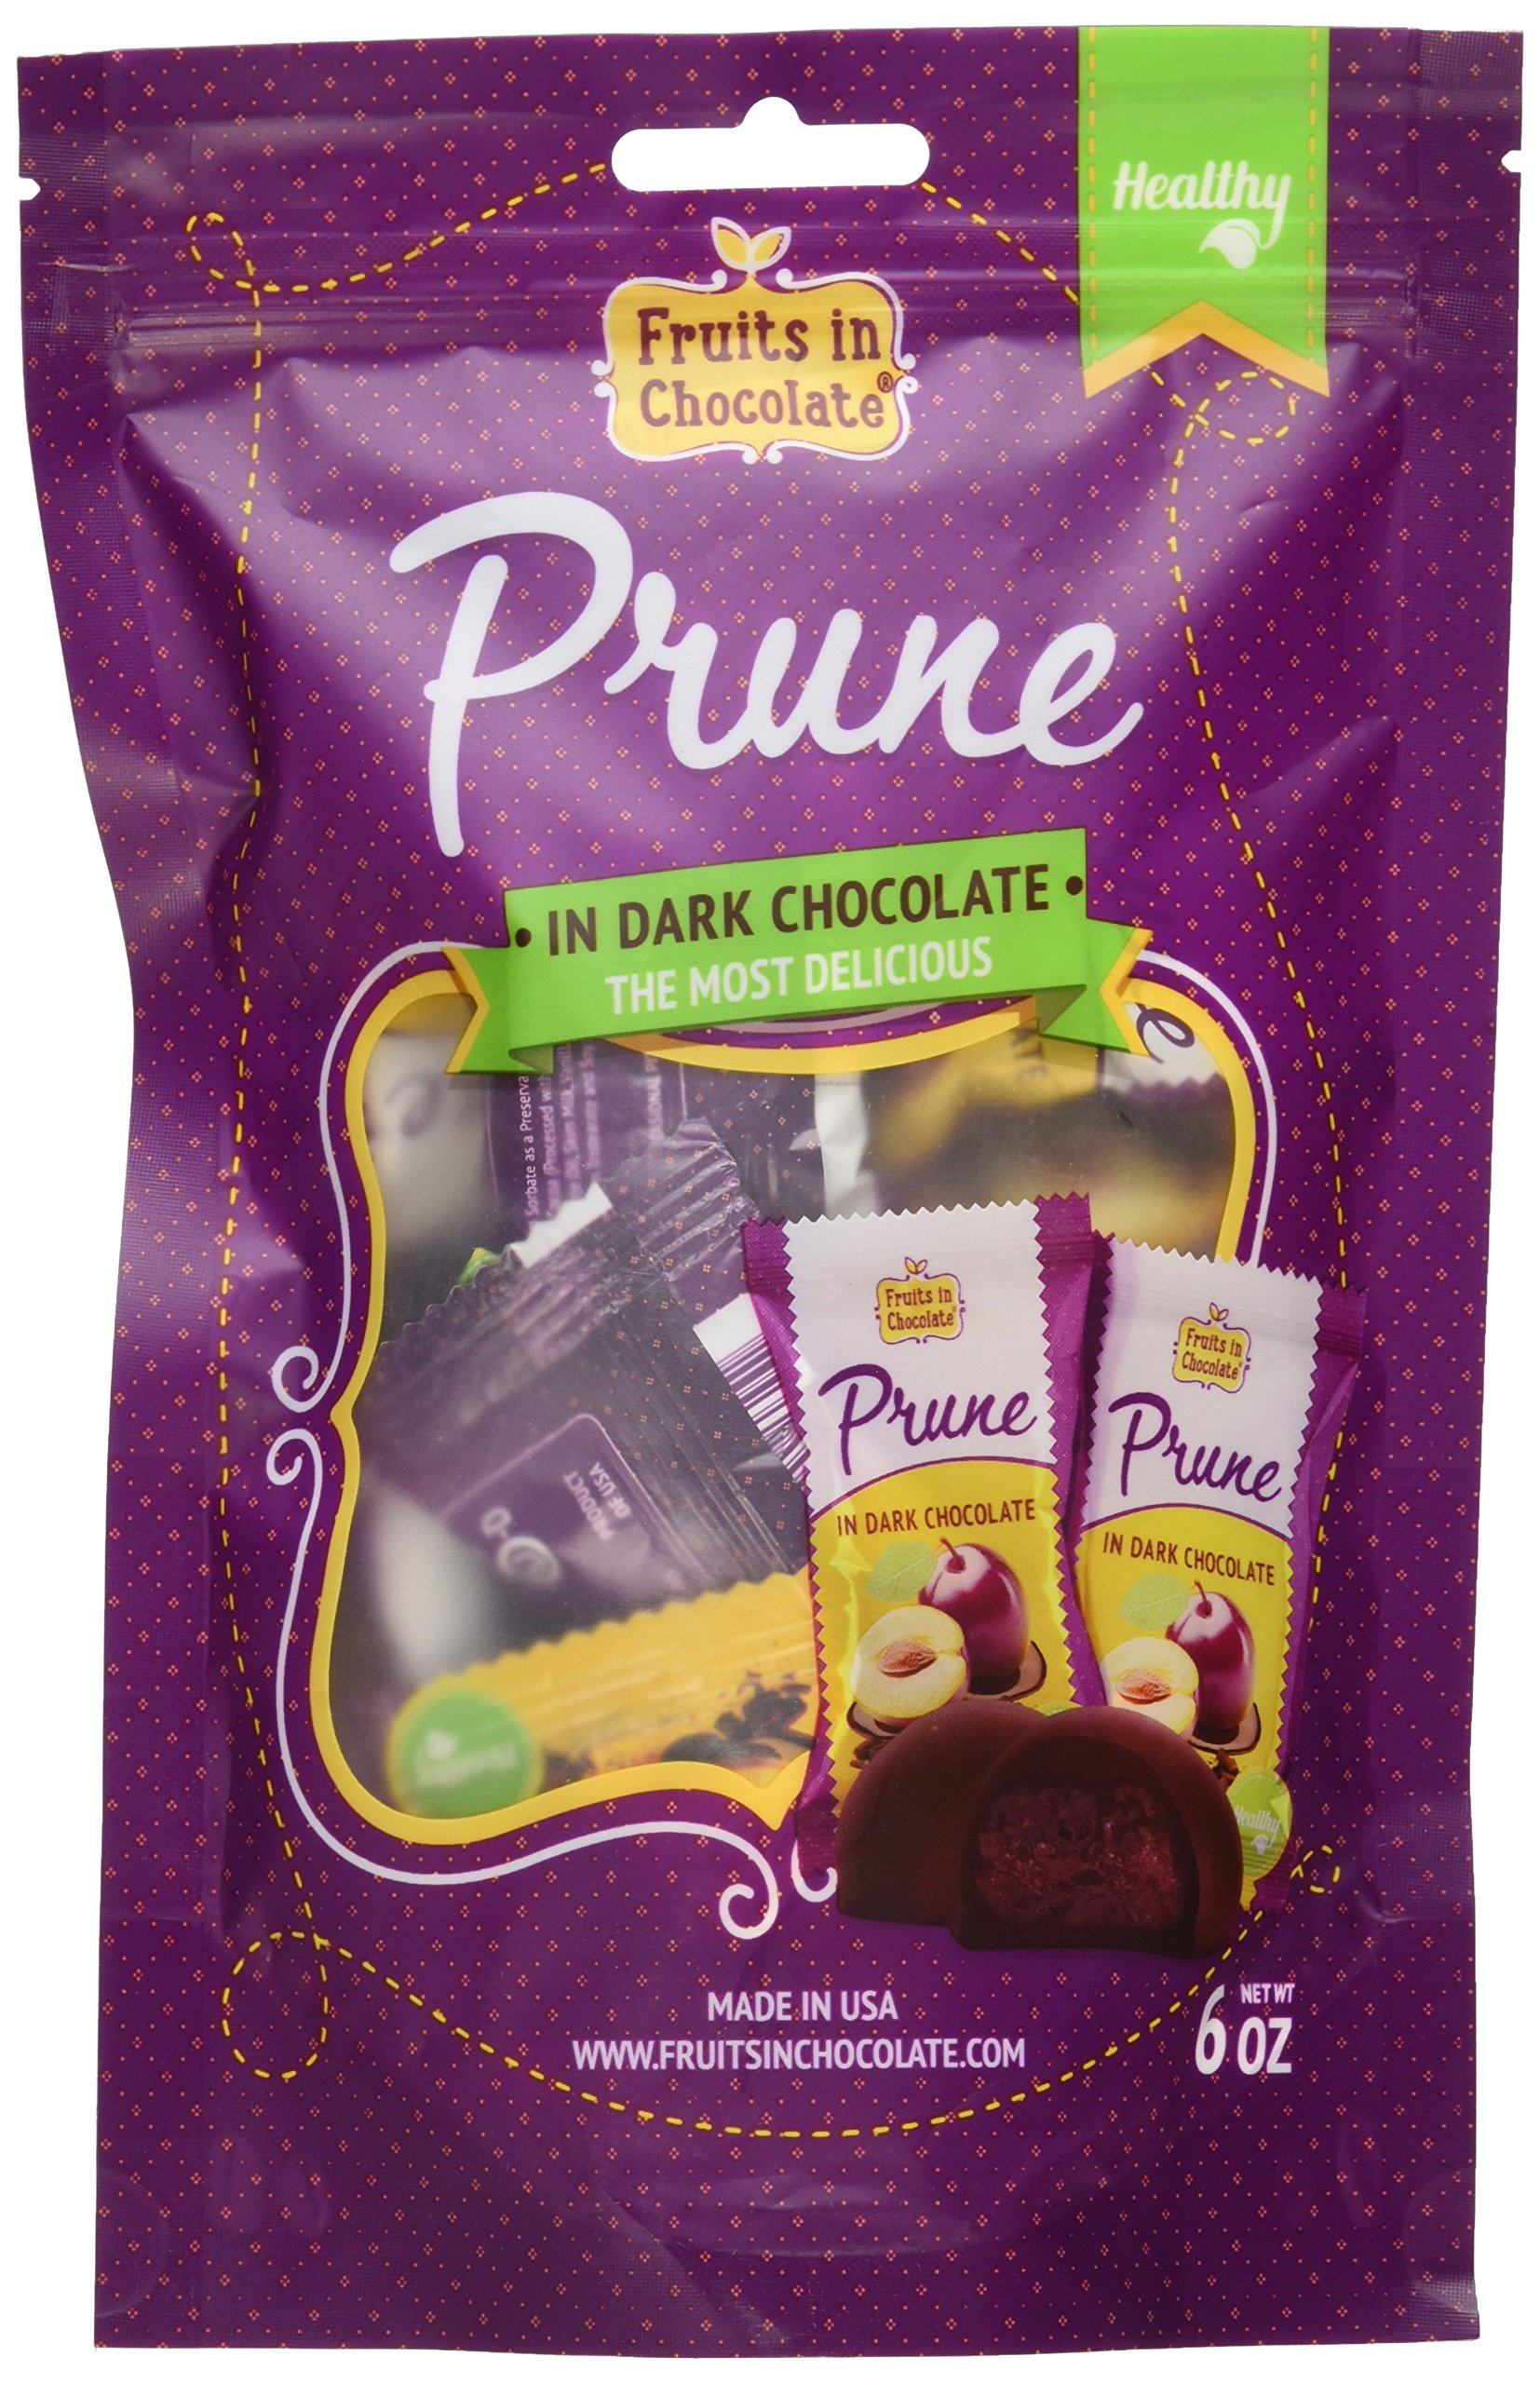 Sunsweet Ones Individually Wrapped Dried Prunes Value Pack